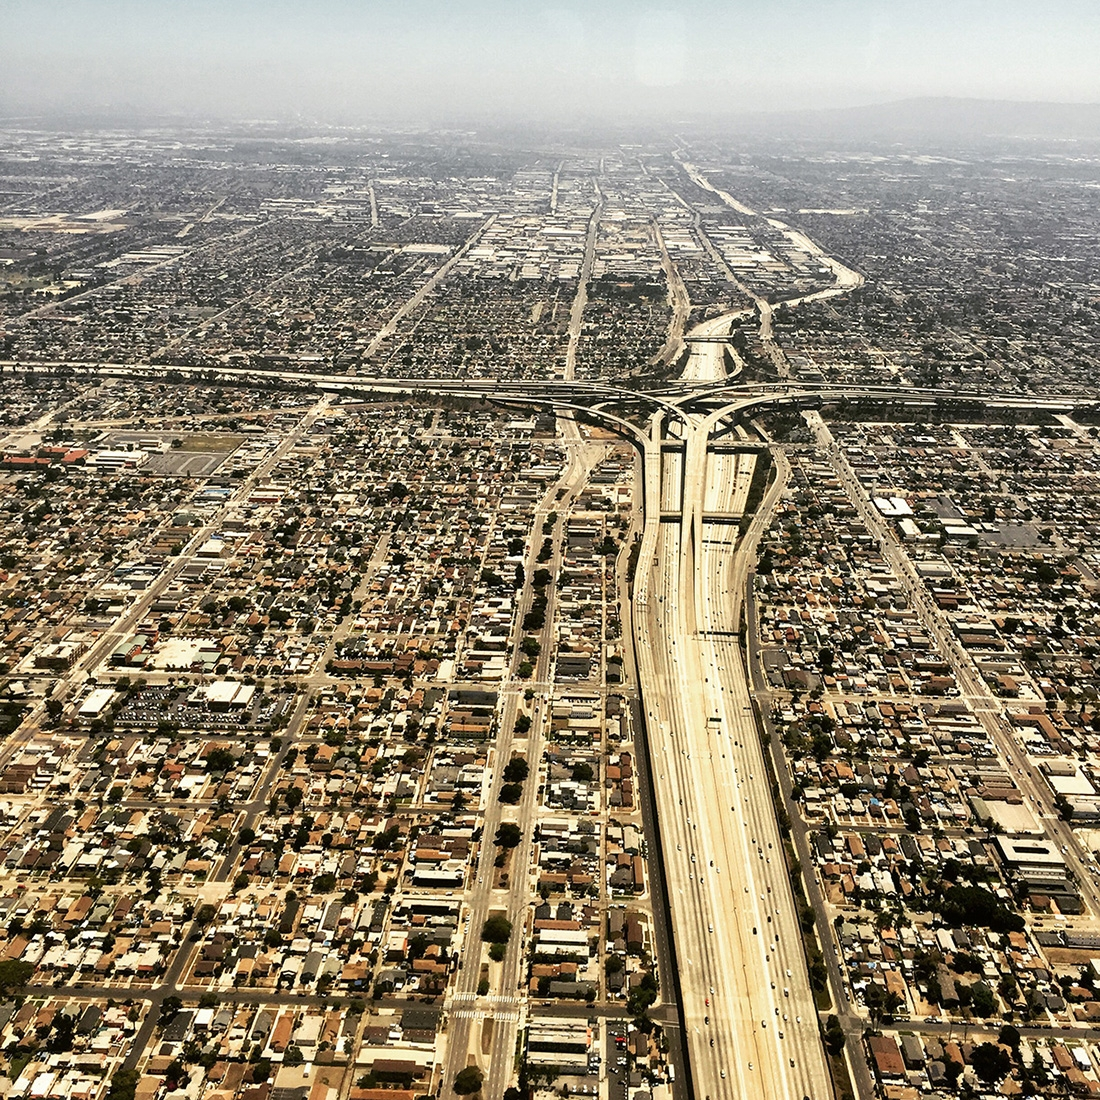 An aerial view of the freeways and buildings of Los Angeles